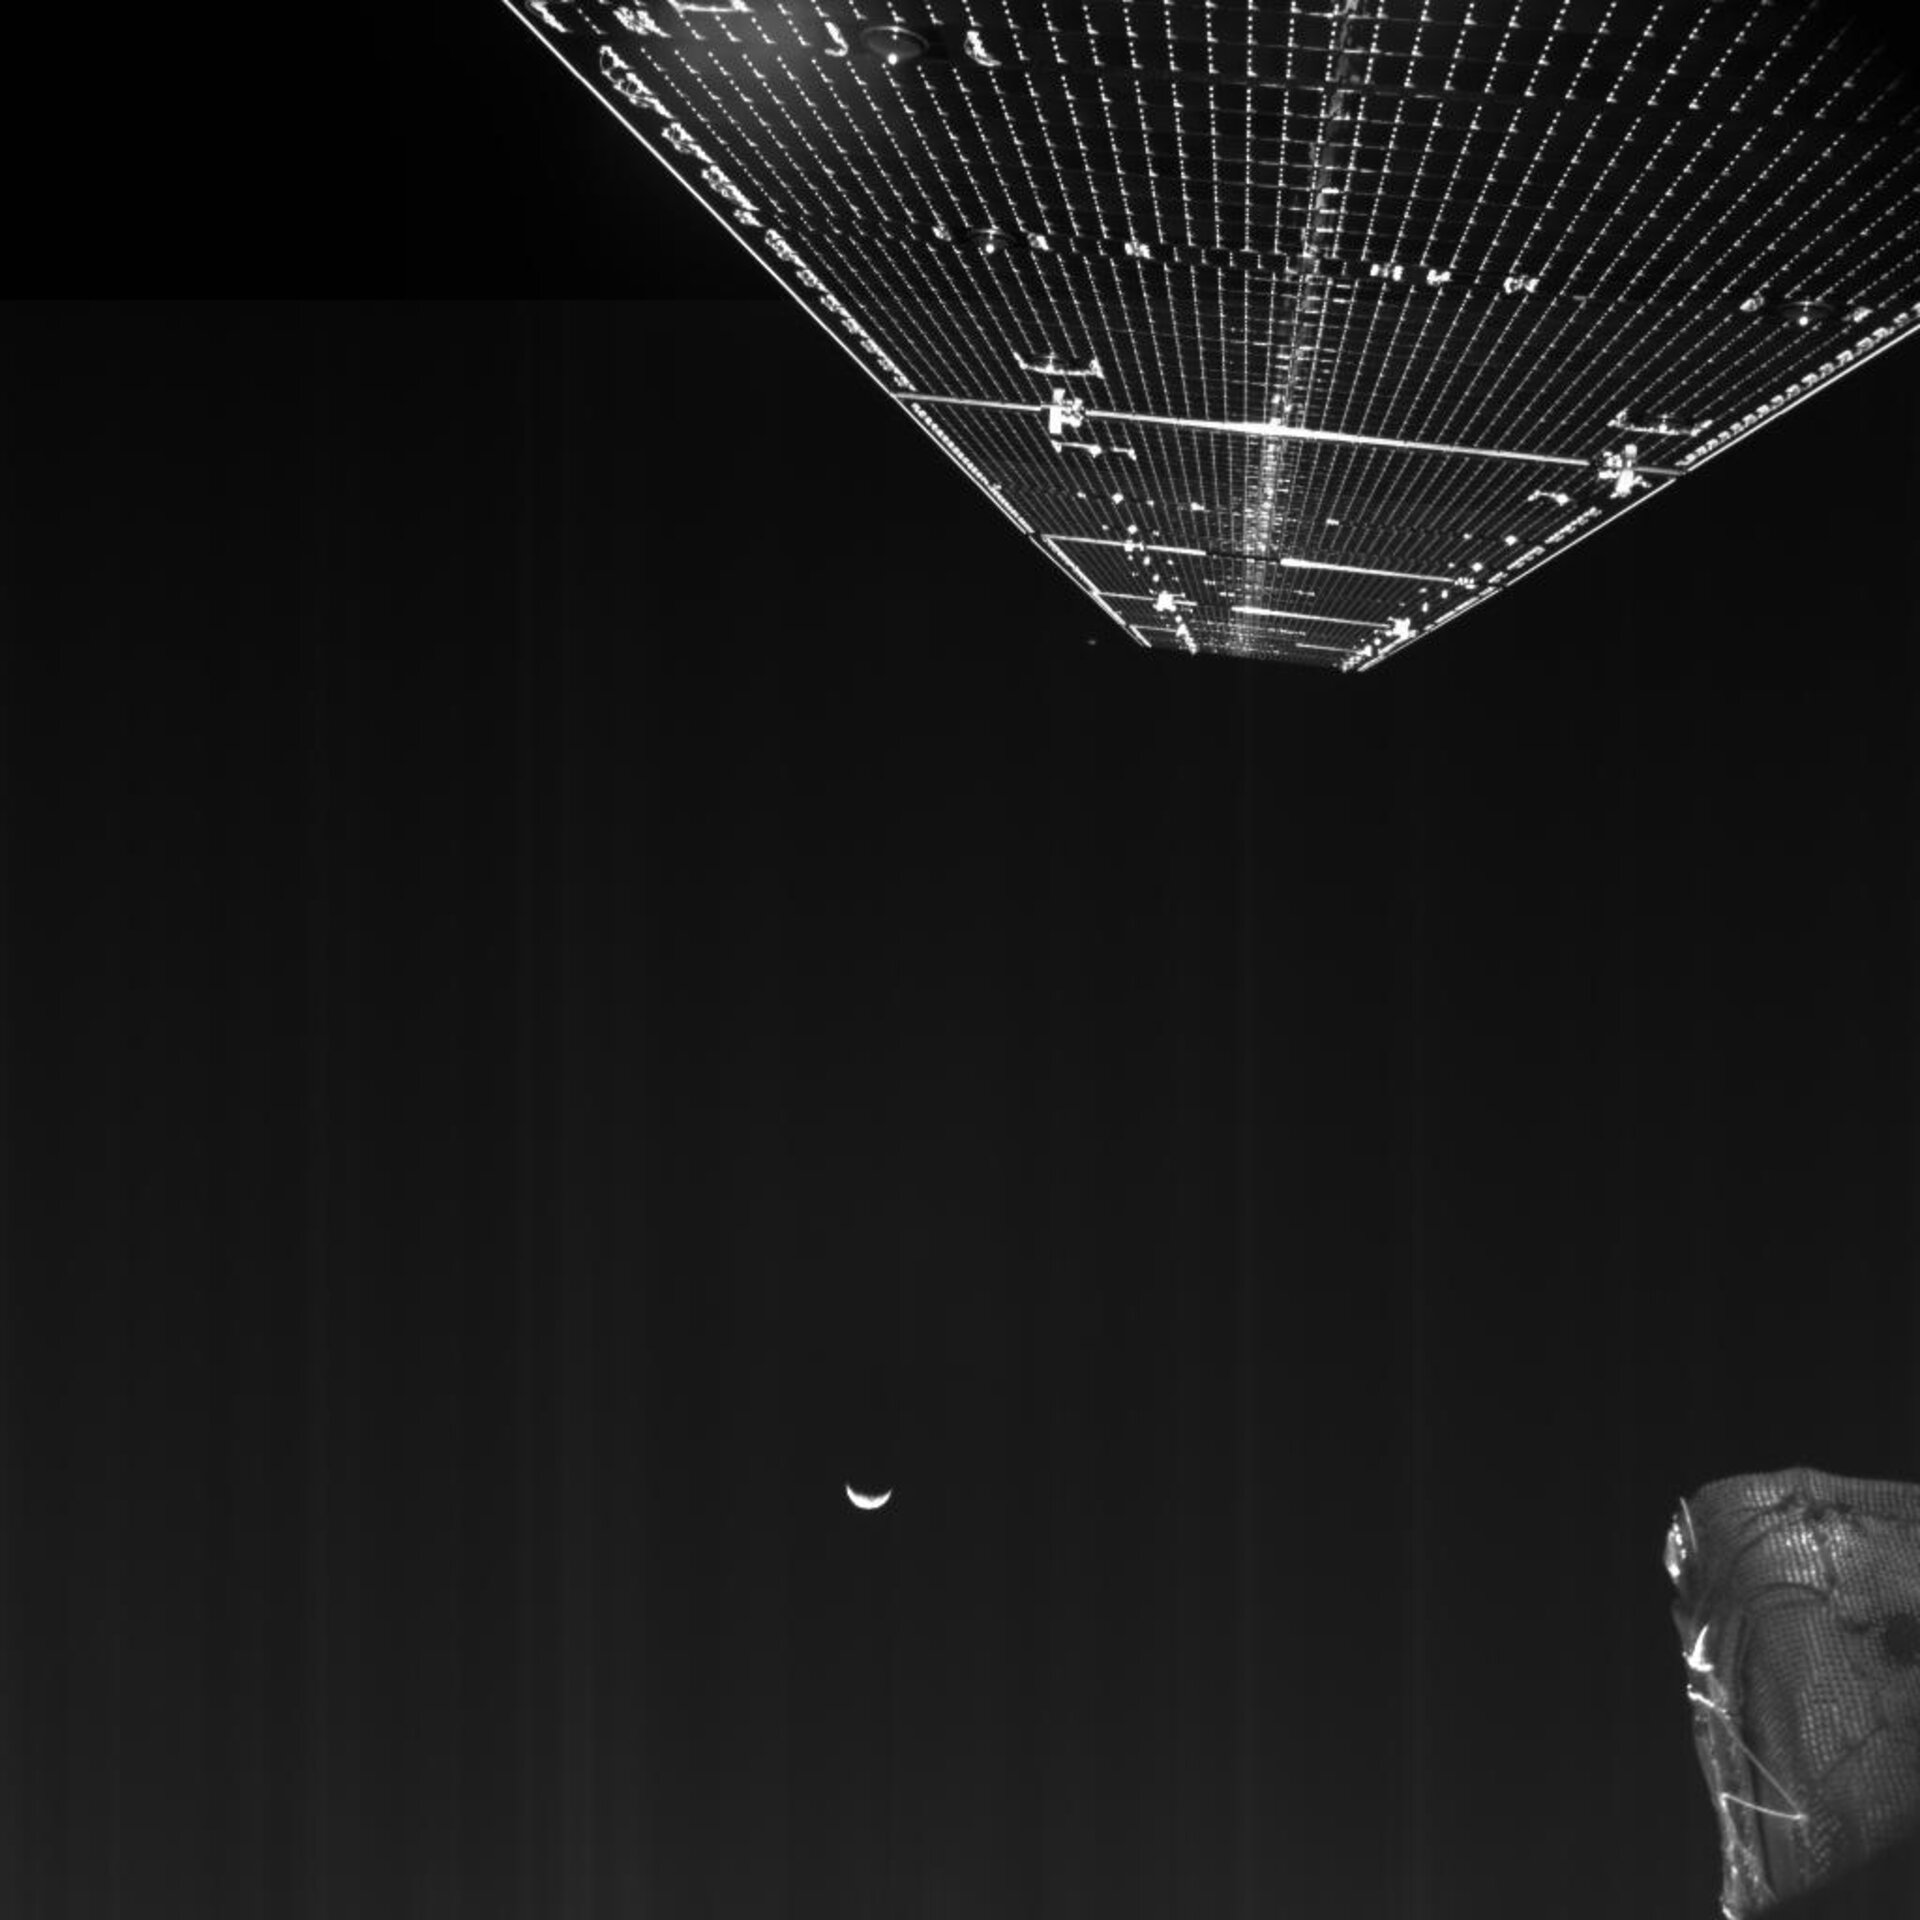 BepiColombo's final glimpses of Earth and the Moon after flyby